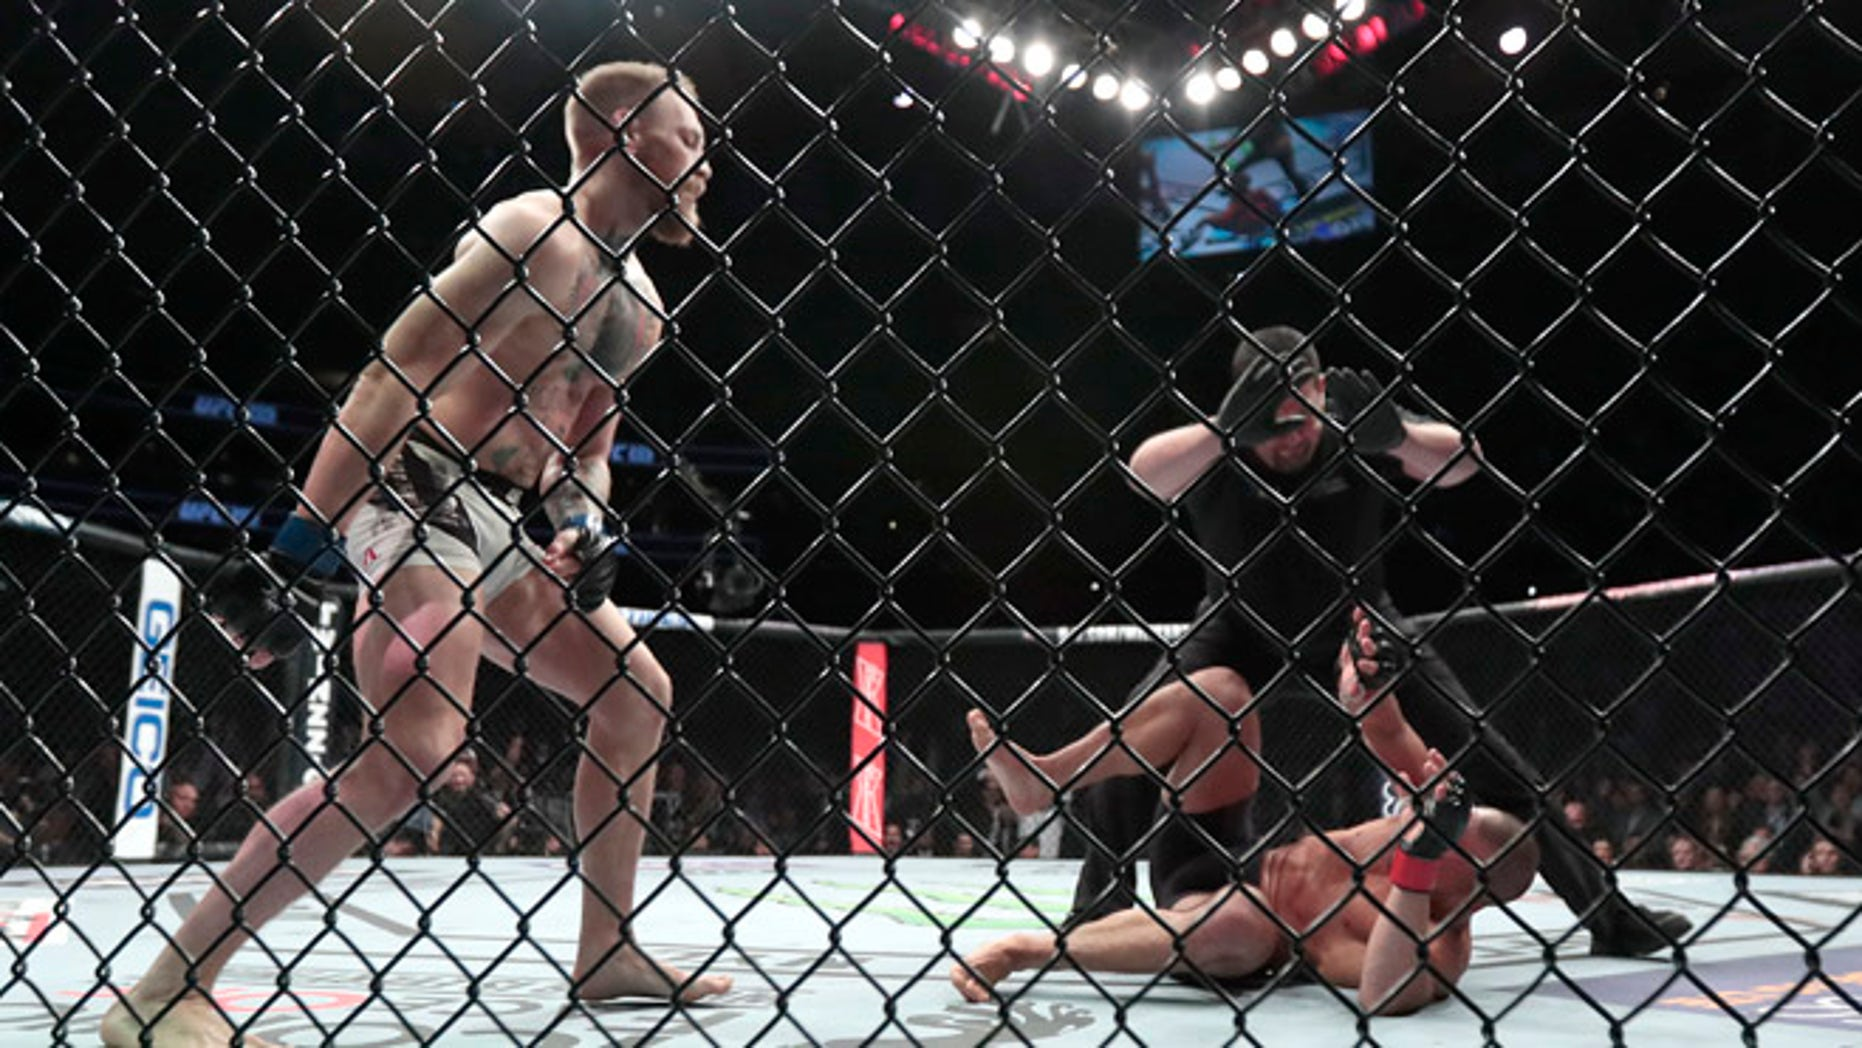 Conor McGregor, left, reacts after the referee stopped his lightweight title mixed martial arts bout against Eddie Alvarez, bottom right, at UFC 205, early Sunday, Nov. 13, 2016, at Madison Square Garden in New York. (AP Photo/Julio Cortez)